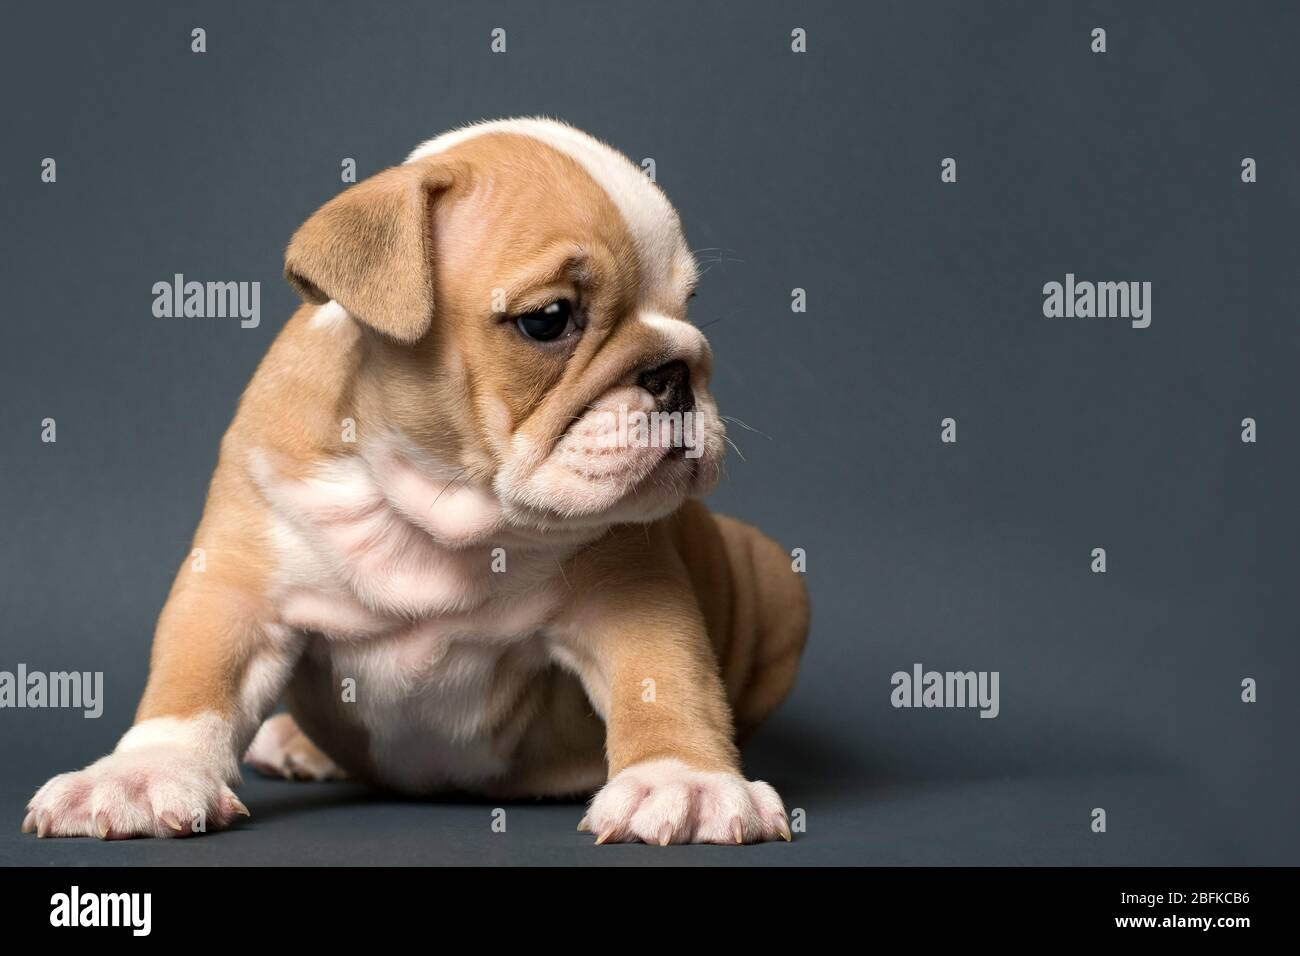 English Bulldog Puppy On Gray Background And Looking Right Text Space To The Right Stock Photo Alamy